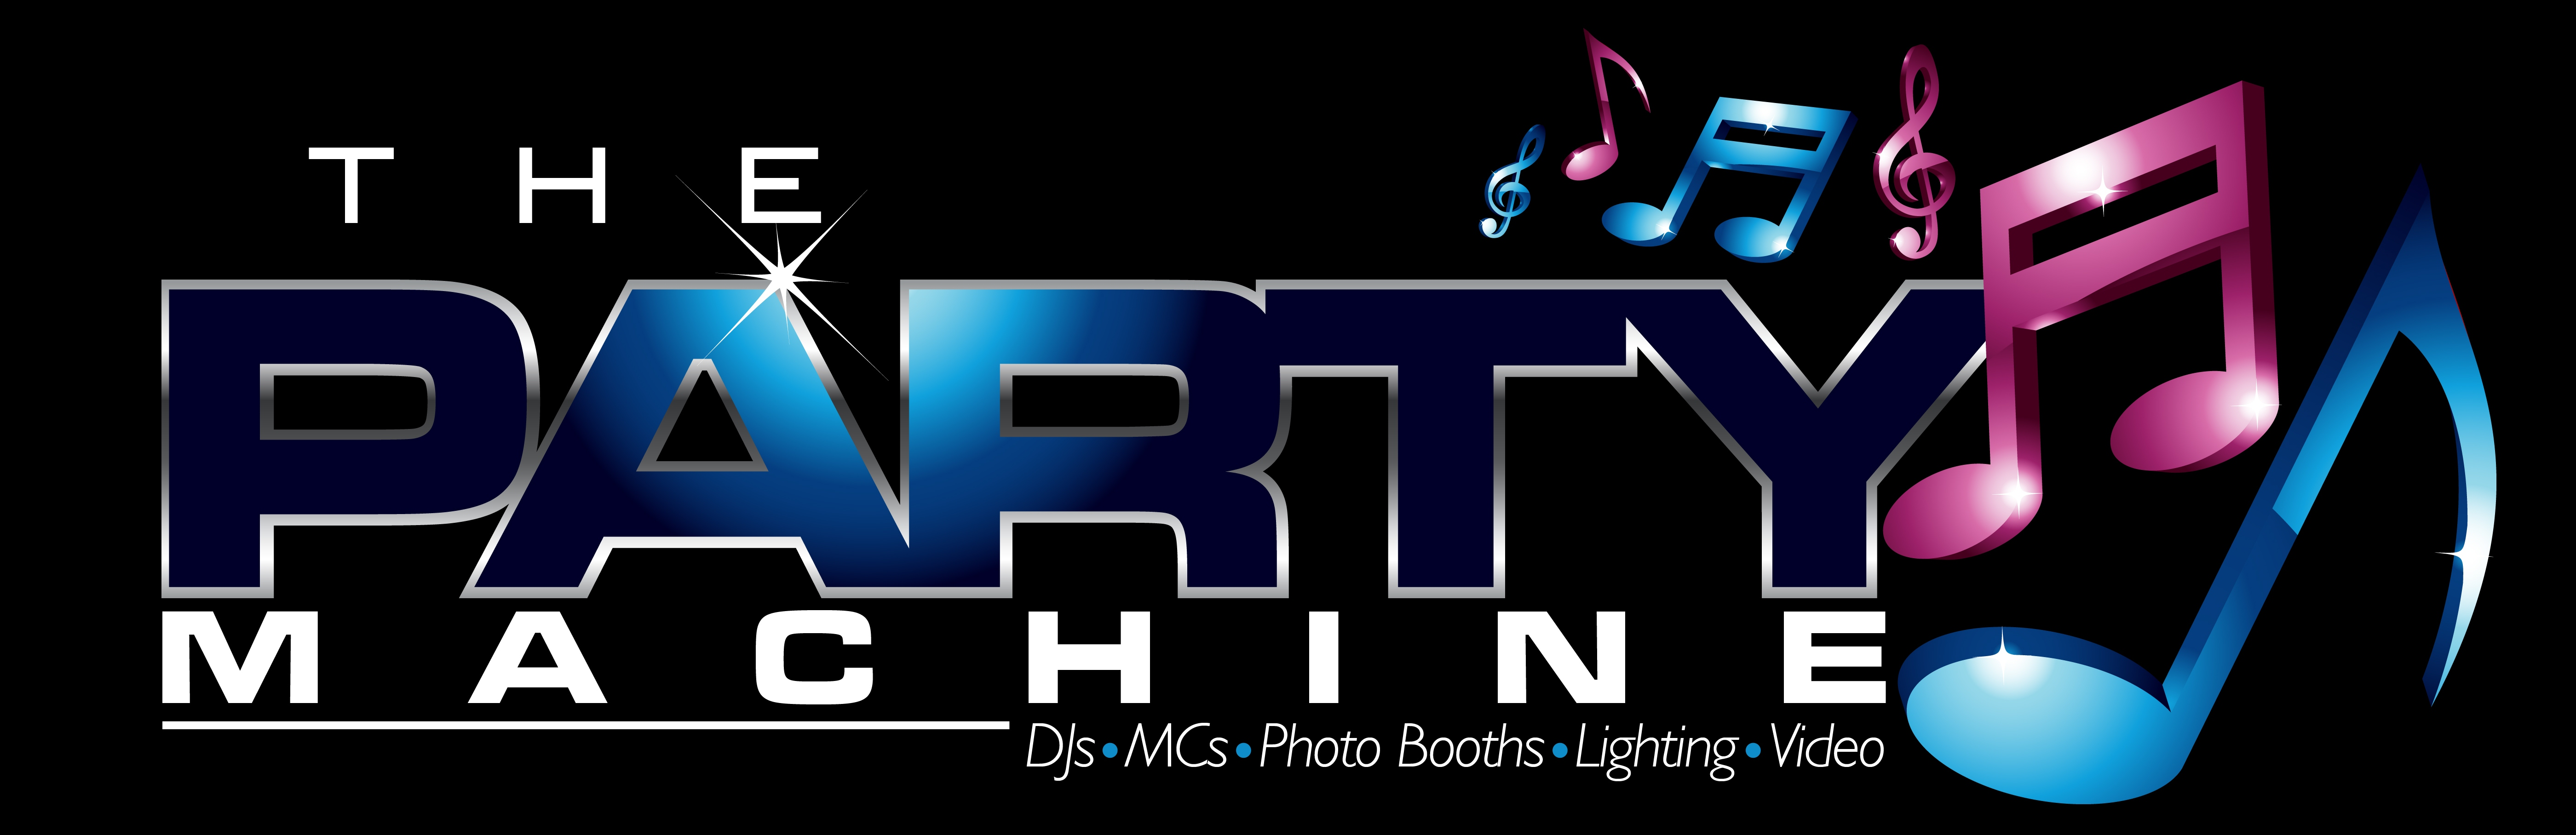 The Party Machine Sc Wedding Djs Mcs Photo Booths Lighting Greenville Spartanburg Anderson